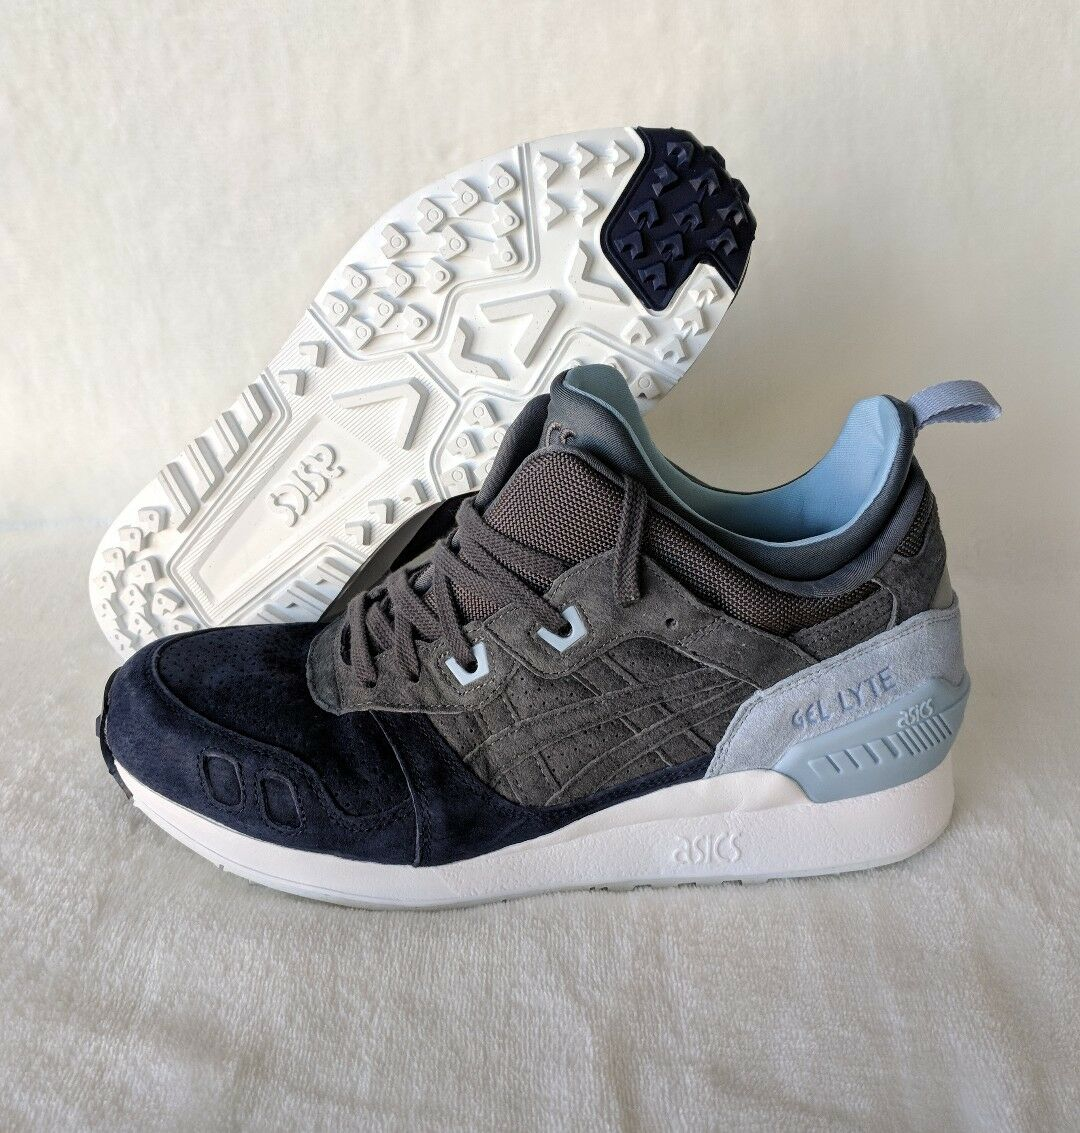 Asics Gel Lyte III MT Carbon Gray Blue Trail Running Shoes HL7Z1-9797 Size 8